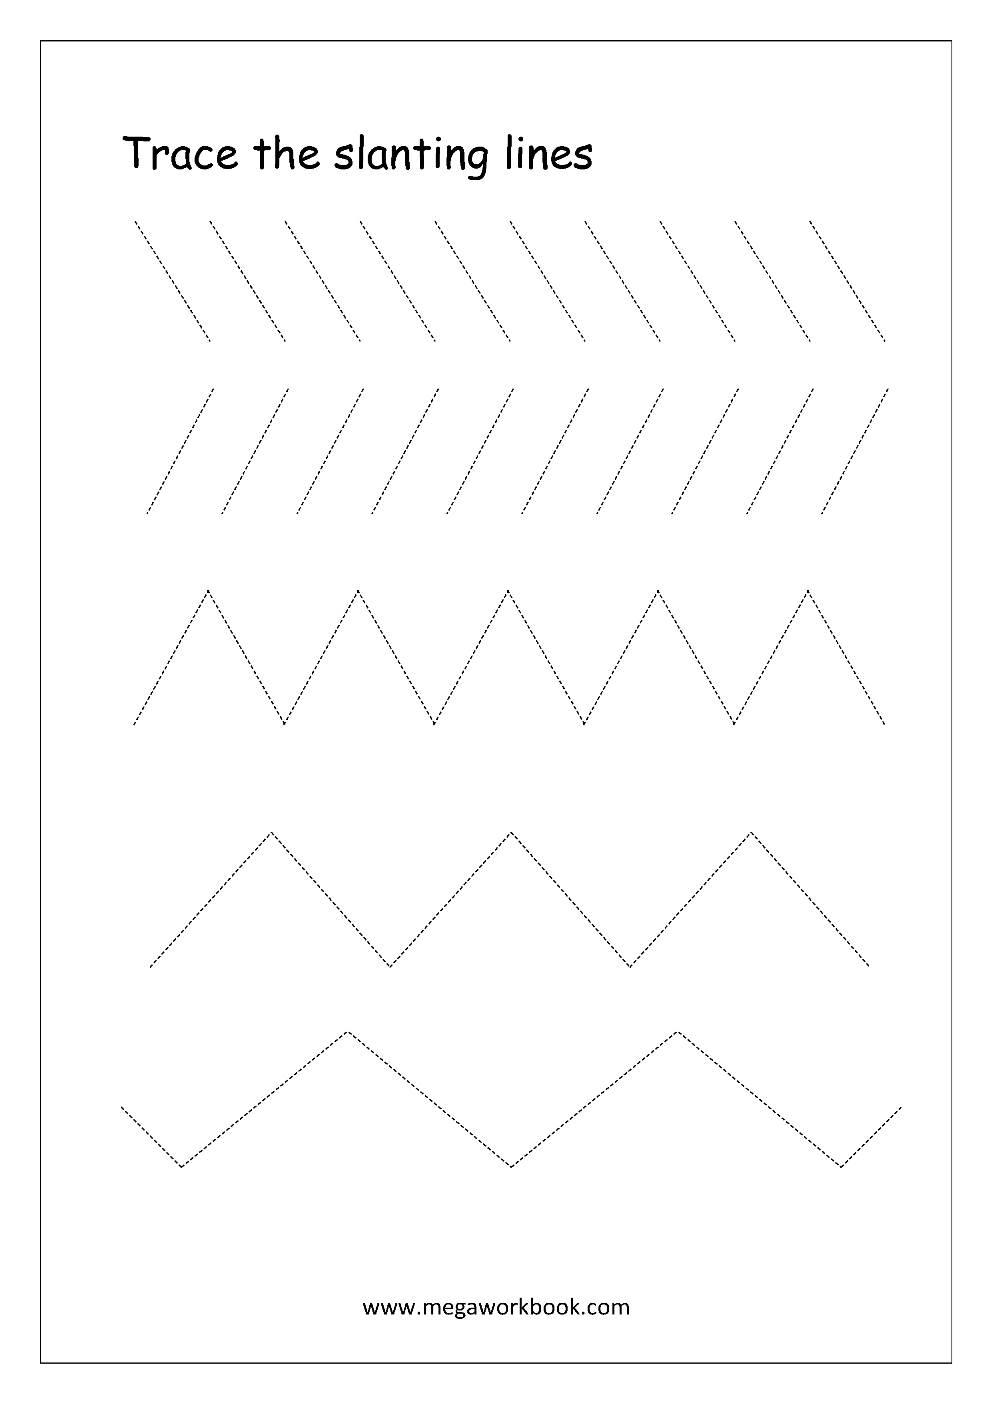 Free Printable Pre-Writing Tracing Worksheets For Preschoolers | Free Printable Preschool Worksheets Tracing Lines